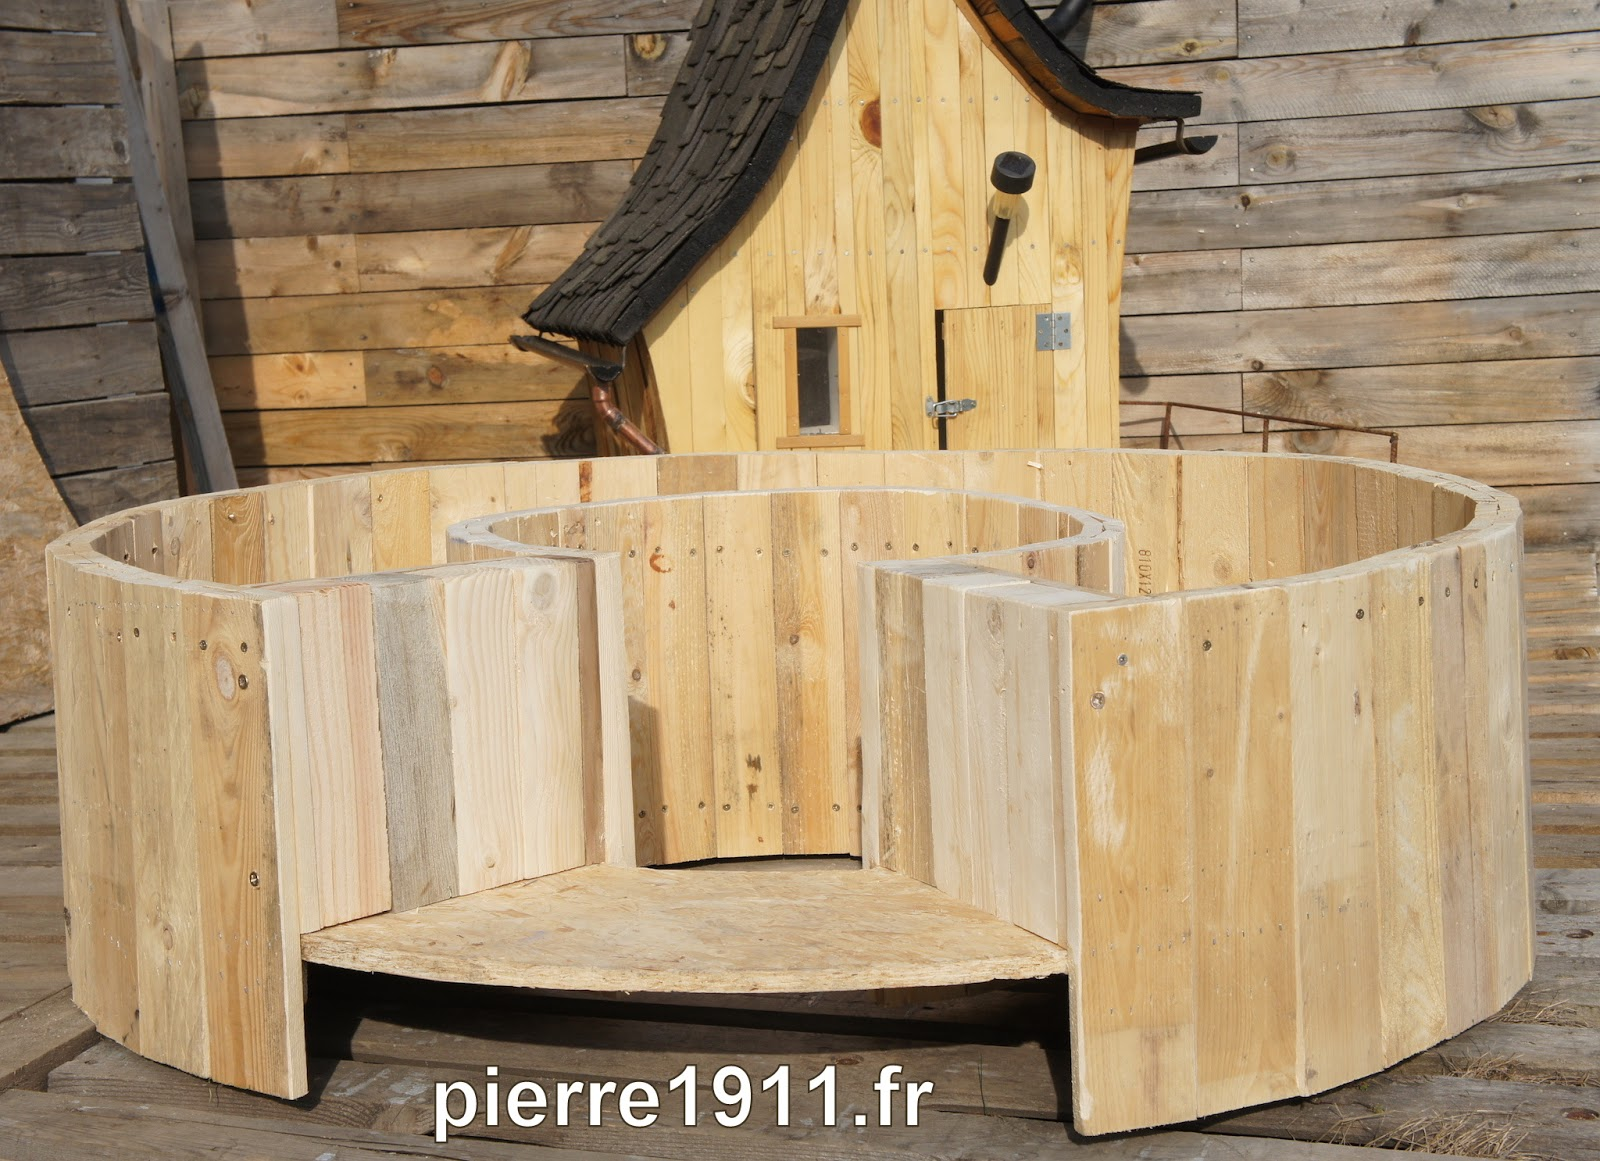 bac de permaculture dans une cr che la ronde de la vie autonomie alimentaire et nerg tique. Black Bedroom Furniture Sets. Home Design Ideas